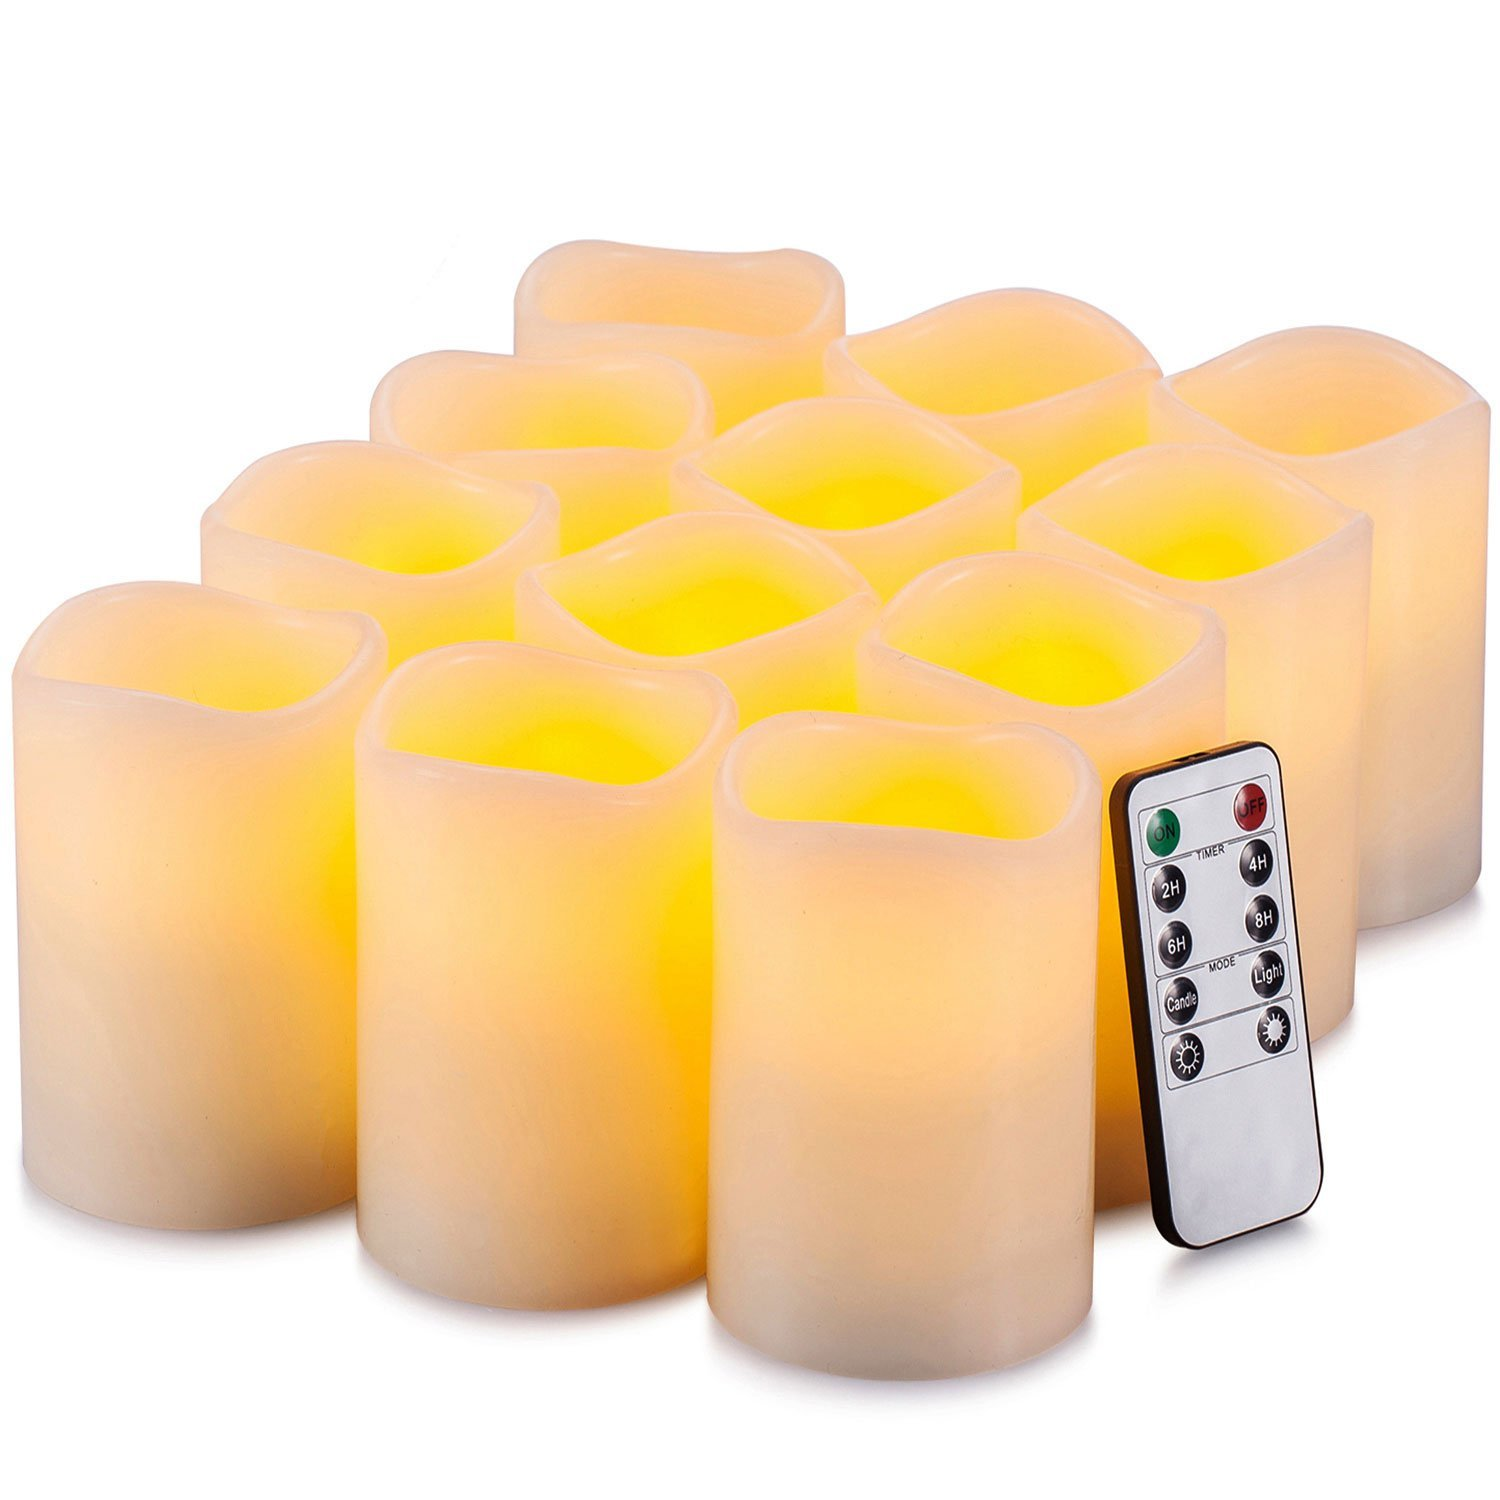 Enpornk Flameless Candles Battery Operated LED Pillar Real Wax Flickering Electric Unscented Candles with Remote Control Cycling 24 Hours Timer 3x4 Set of 12